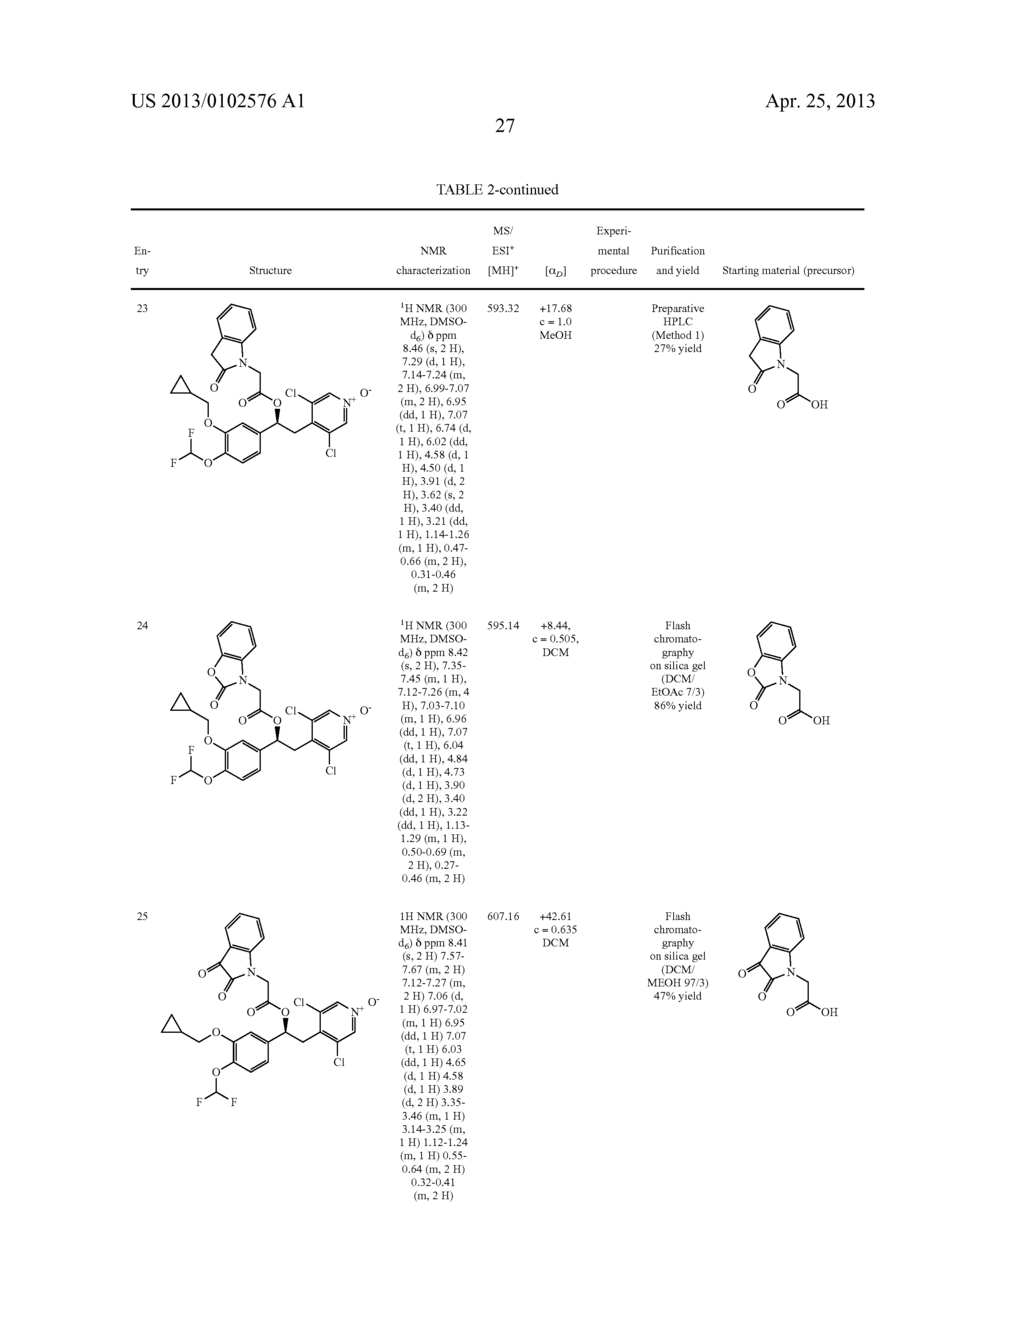 DERIVATIVES OF 1-PHENYL-2-PYRIDINYL ALKYL ALCOHOLS AS PHOSPHODIESTERASE     INHIBITORS - diagram, schematic, and image 28